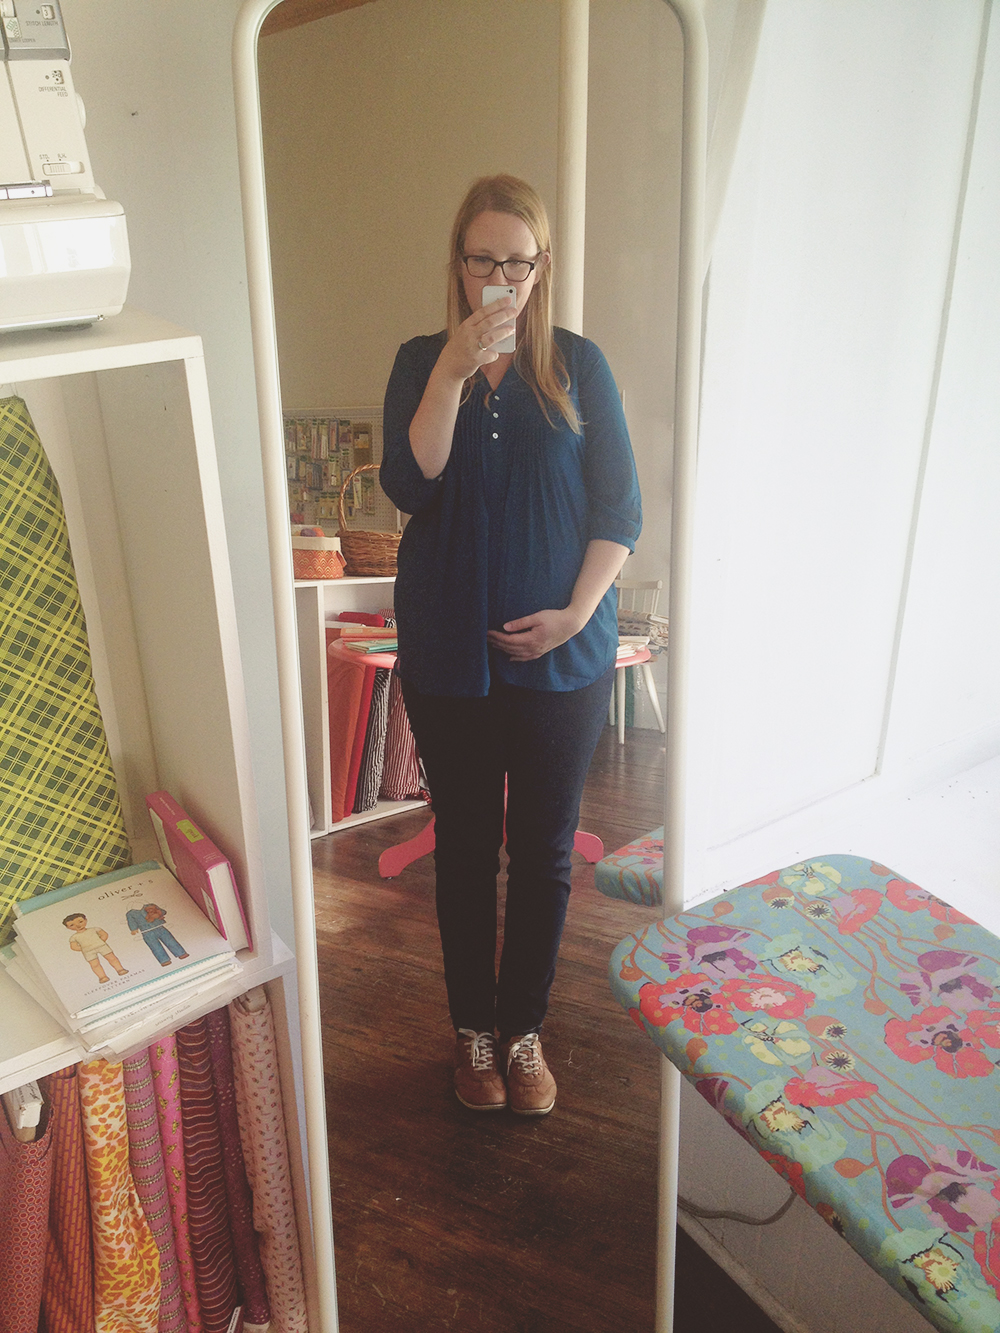 My 'bump' at 16.5 weeks into pregnancy.